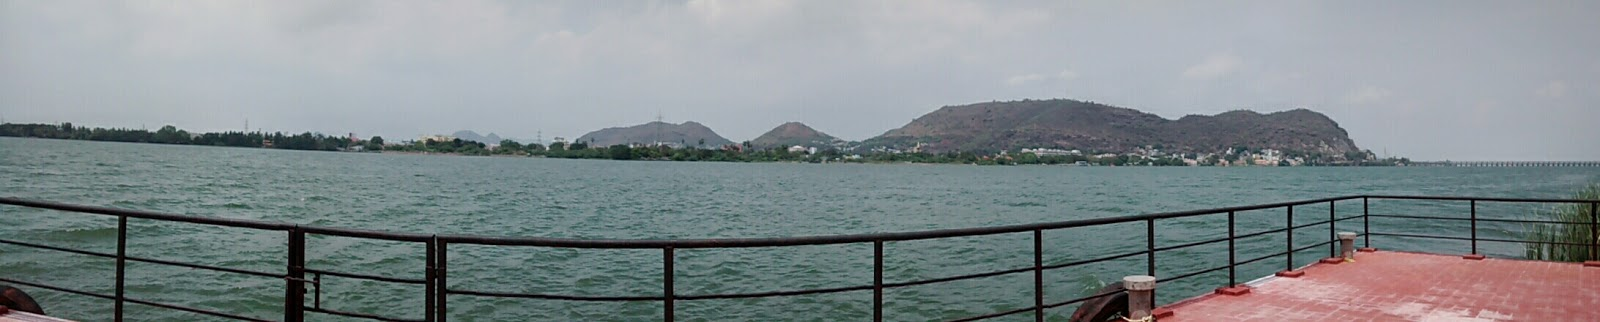 View from Bhavani island